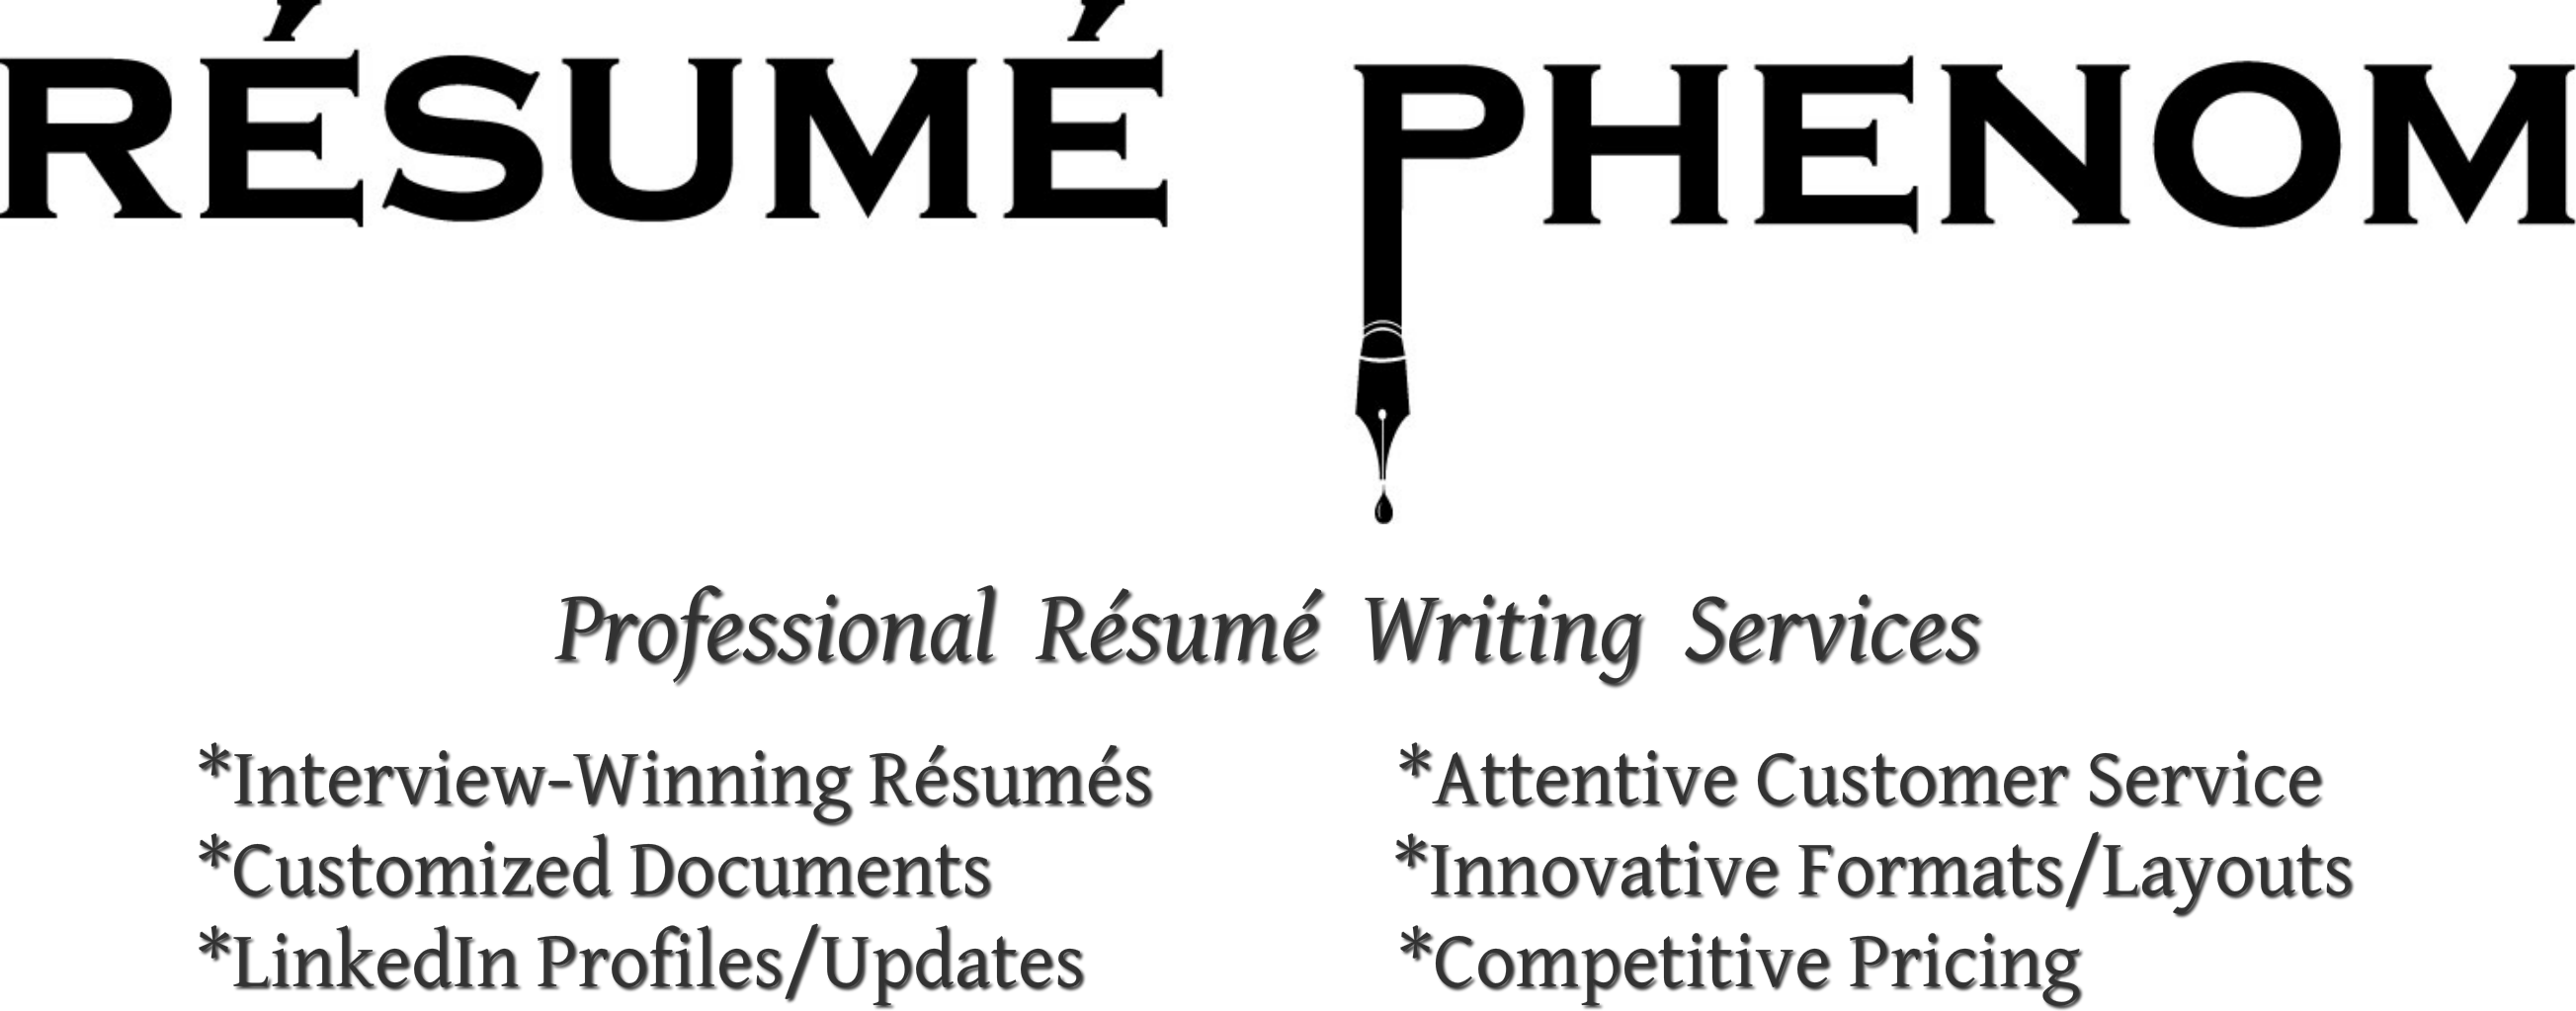 professional resume writing service cost Here's a list of cheap resume services for $99 or less cheap resume services don't charge a lot of money cheap resume writing services - $4995 for a professional resume resumes planet - $8995 for resume writing and cover letter costs extra.